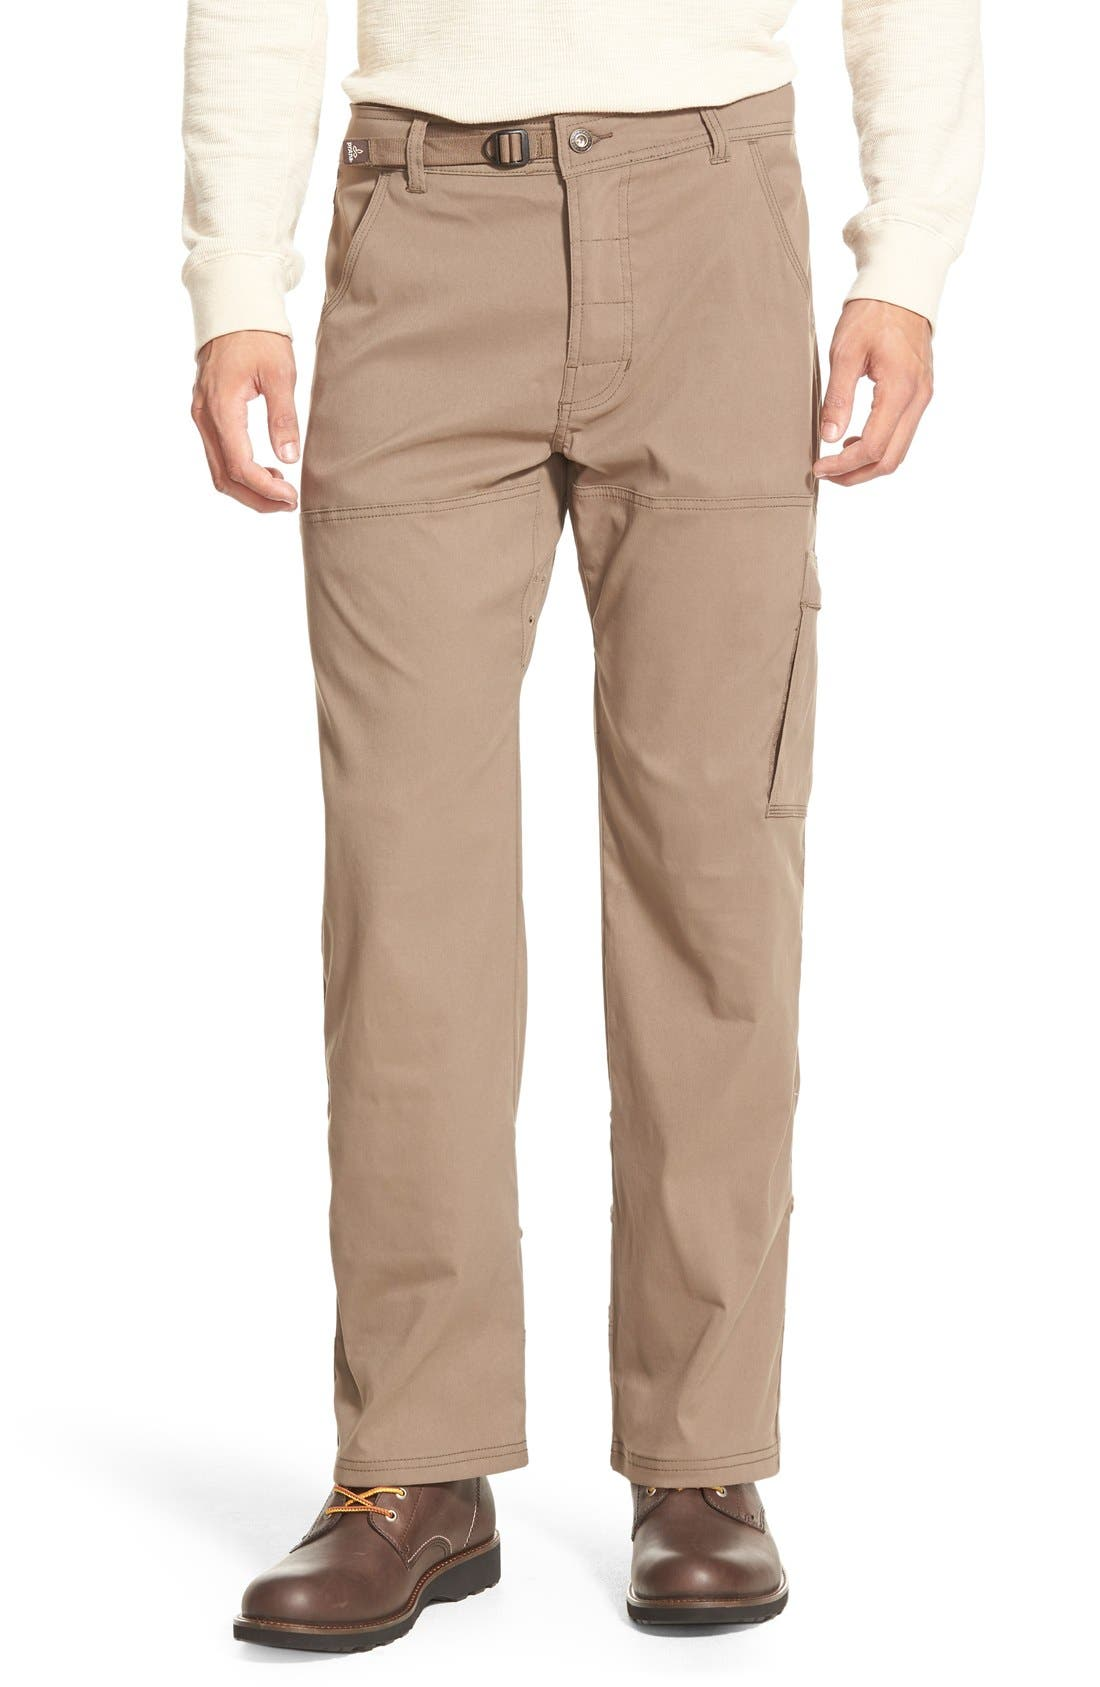 Alternate Image 1 Selected - prAna 'Zion' Stretchy Hiking Pants